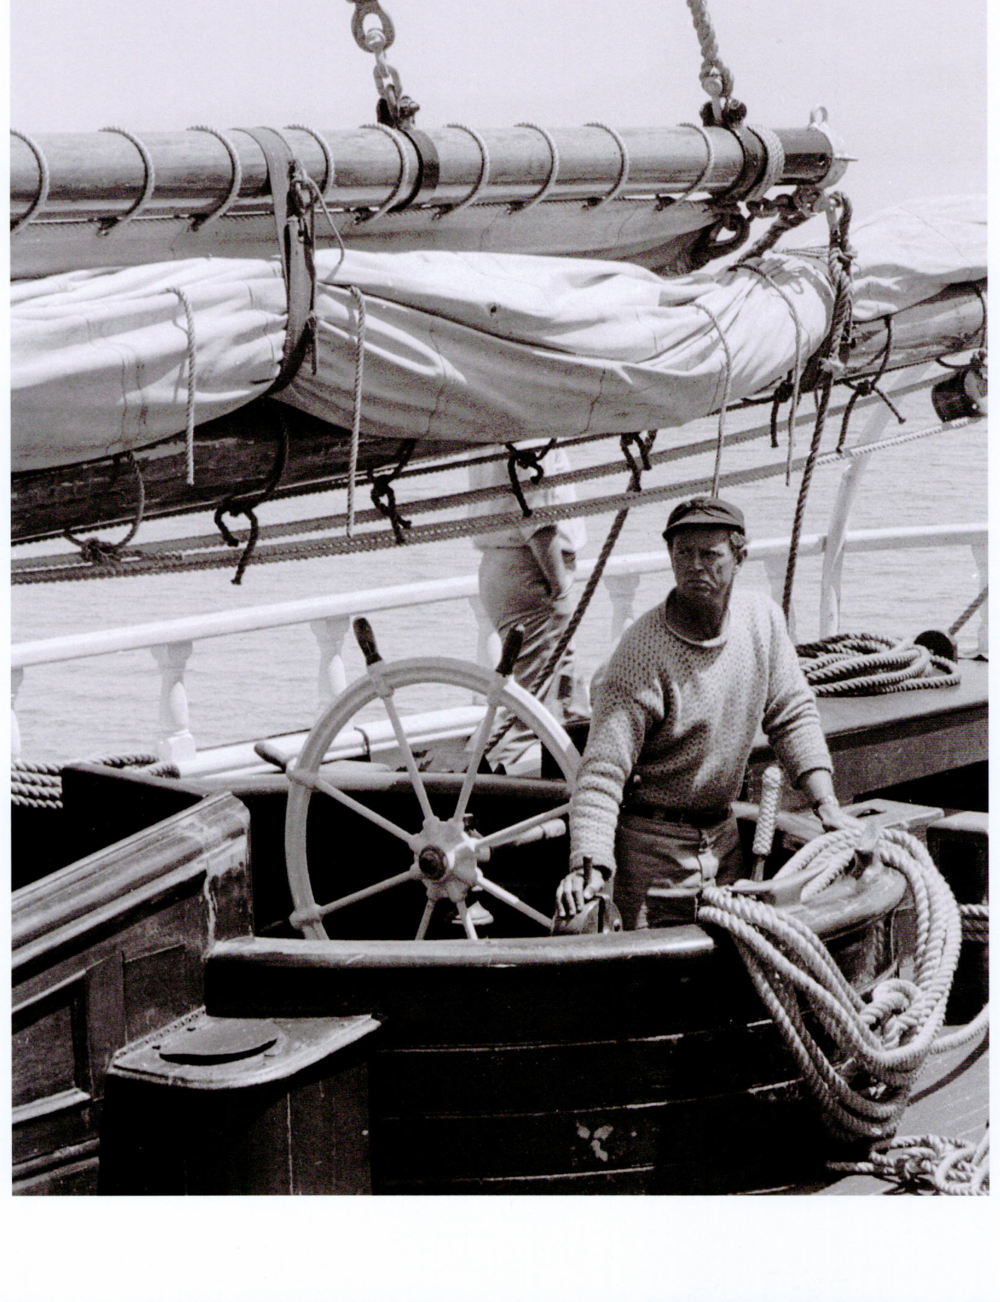 Sterling Hayden at the helm of the schooner he later renamed Wanderer. Photo by Craig Sharp, Courtesy of Sausalito Historical Society